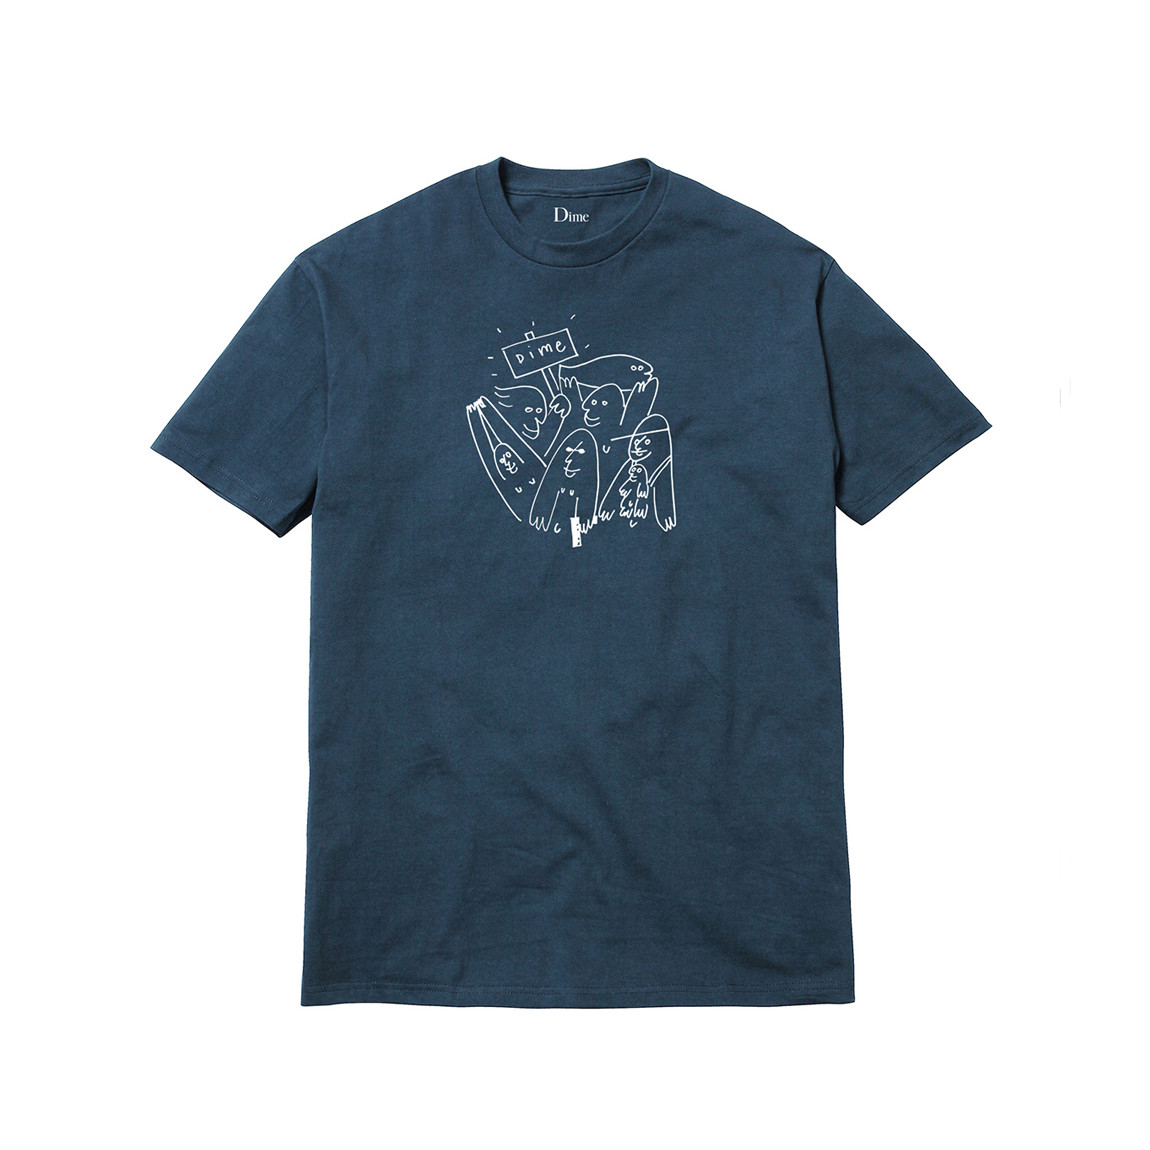 kooks-t-shirt-blue.jpg